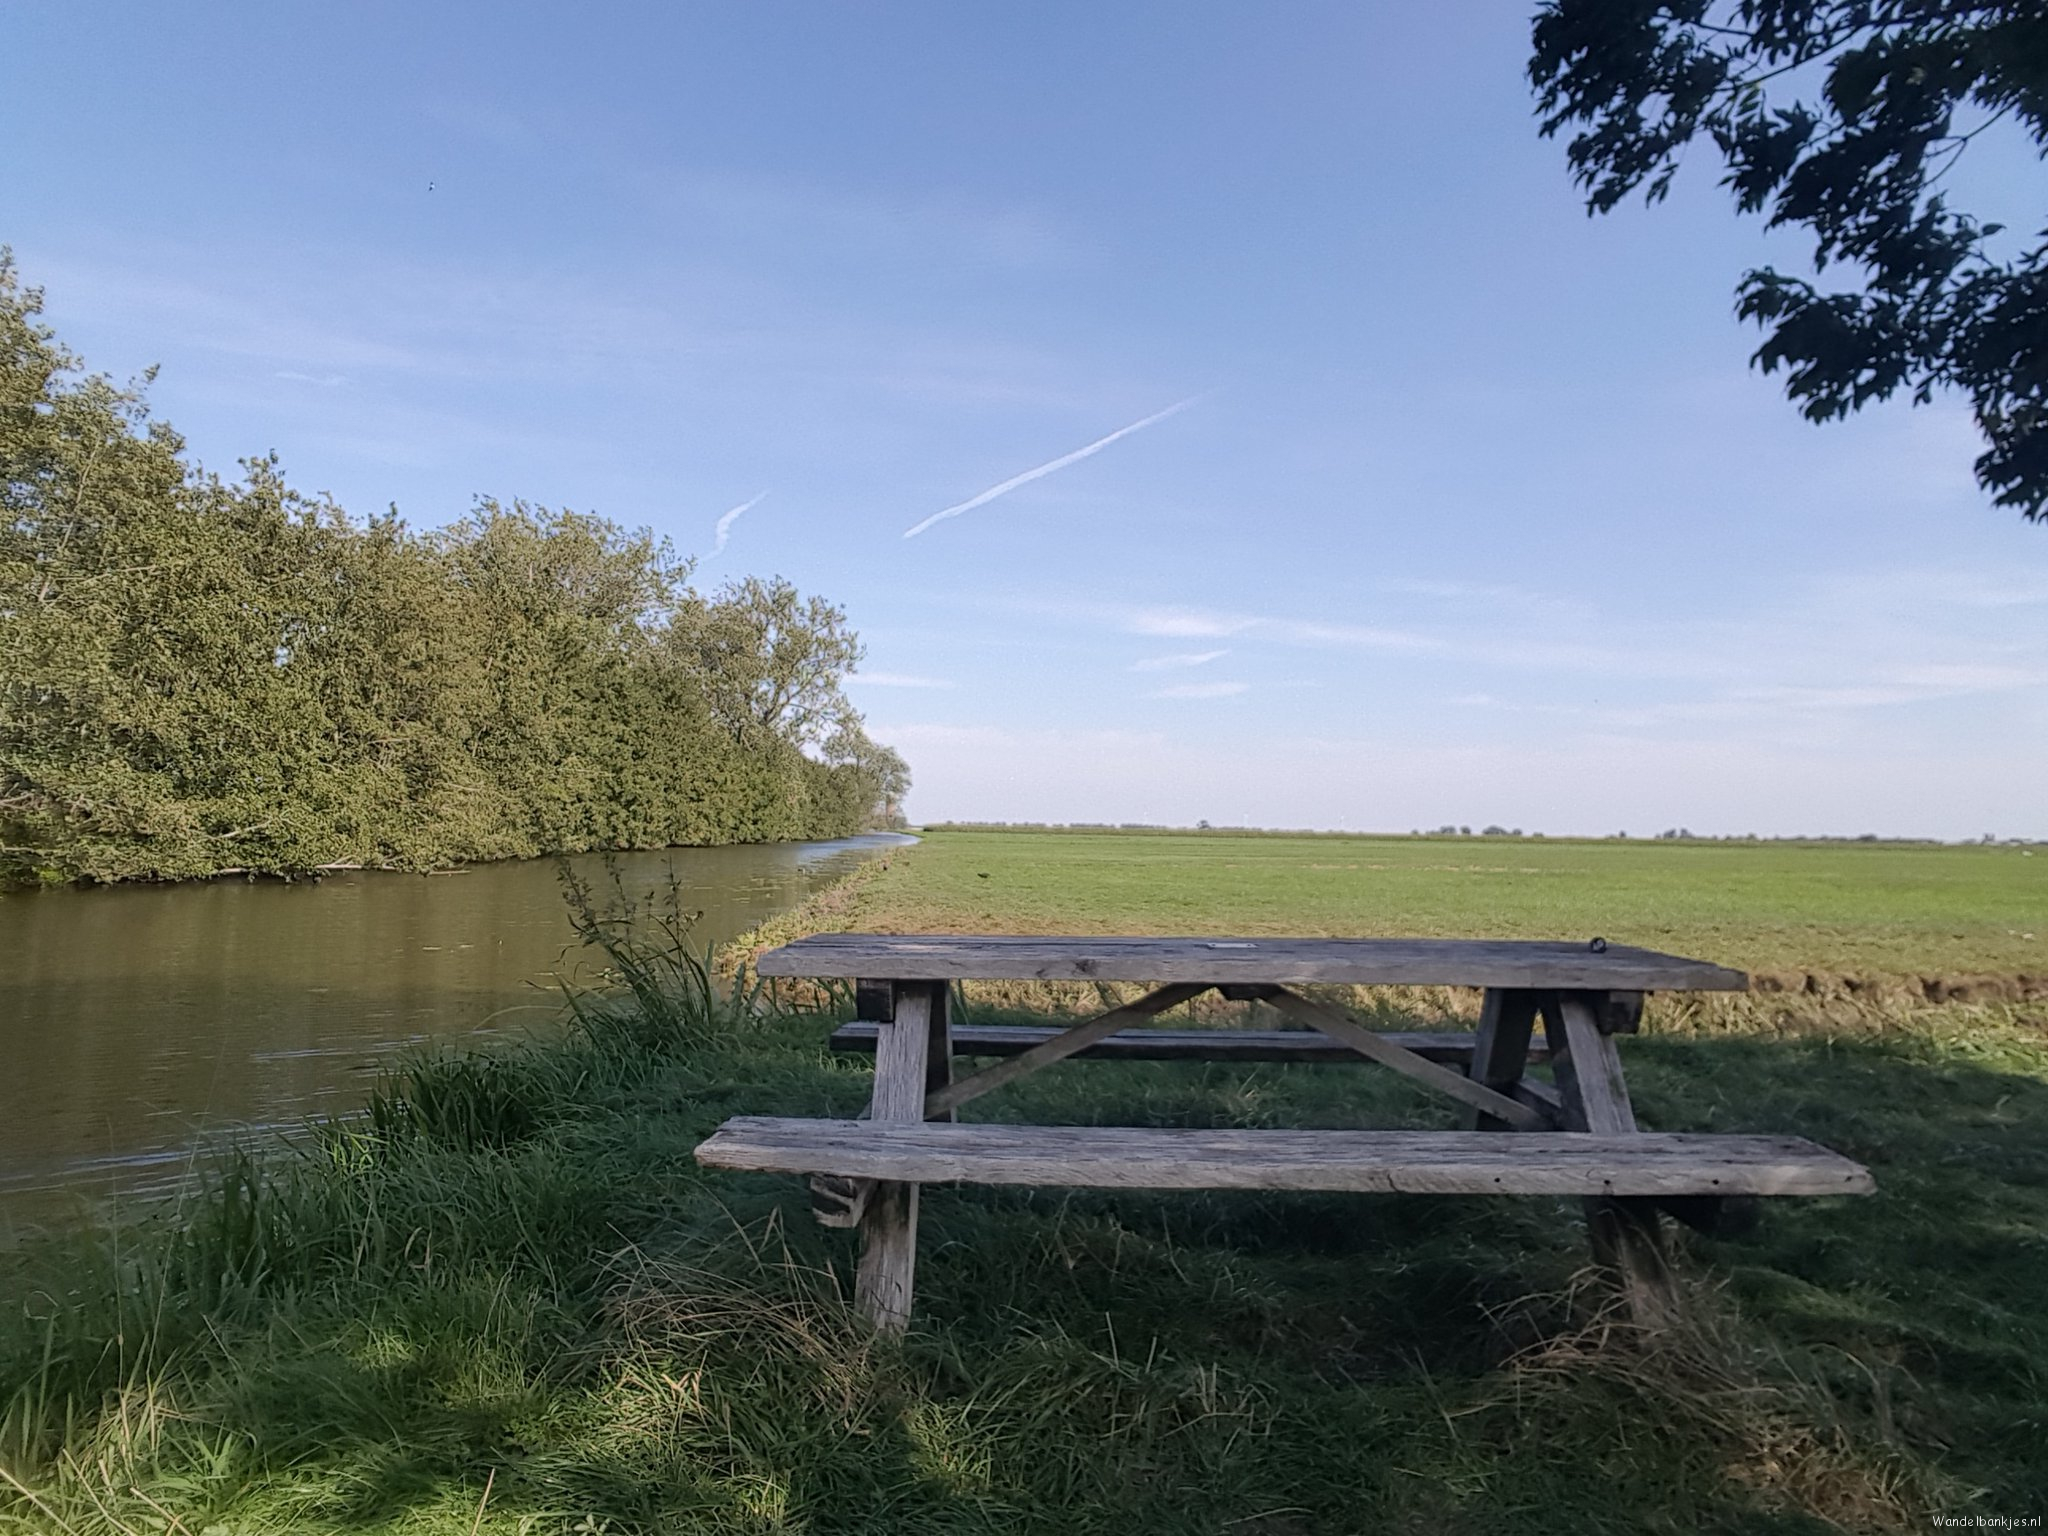 rt-groenhartstoc1-walking benches-along-the-landing-churchpath-between-cabauw-poksbroek-https-t-co-qpaz7zdbyw